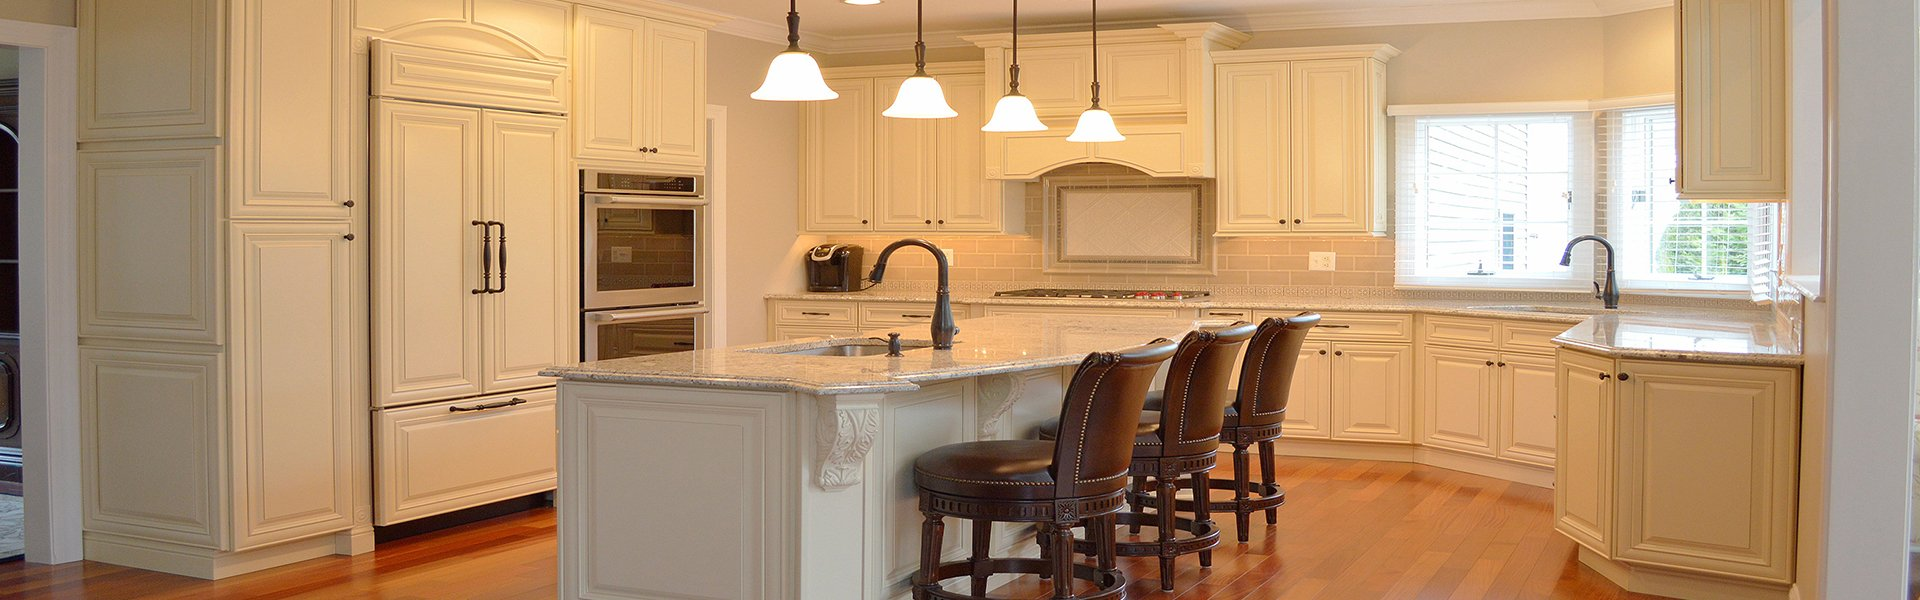 Marvelous Kitchen Remodeling Cabinet Renewal Long Island Wood Download Free Architecture Designs Crovemadebymaigaardcom